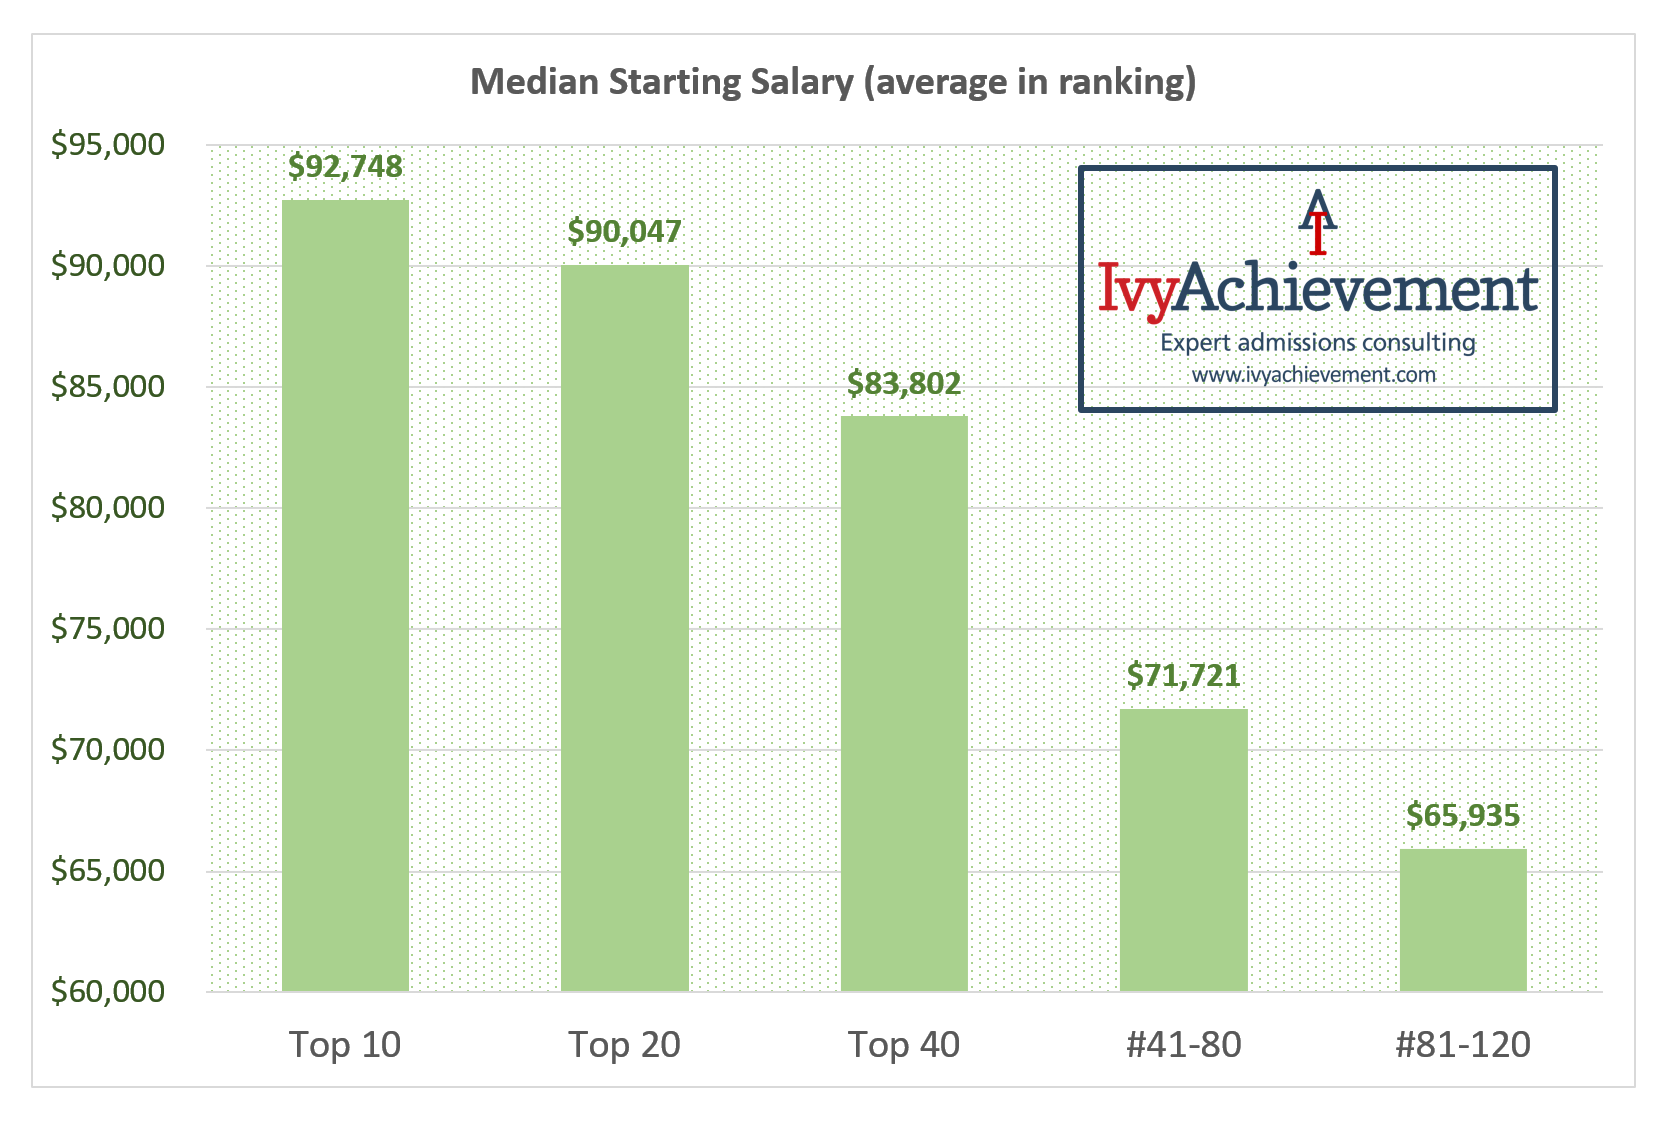 IvyAchievement computer science employment rankings - salaries